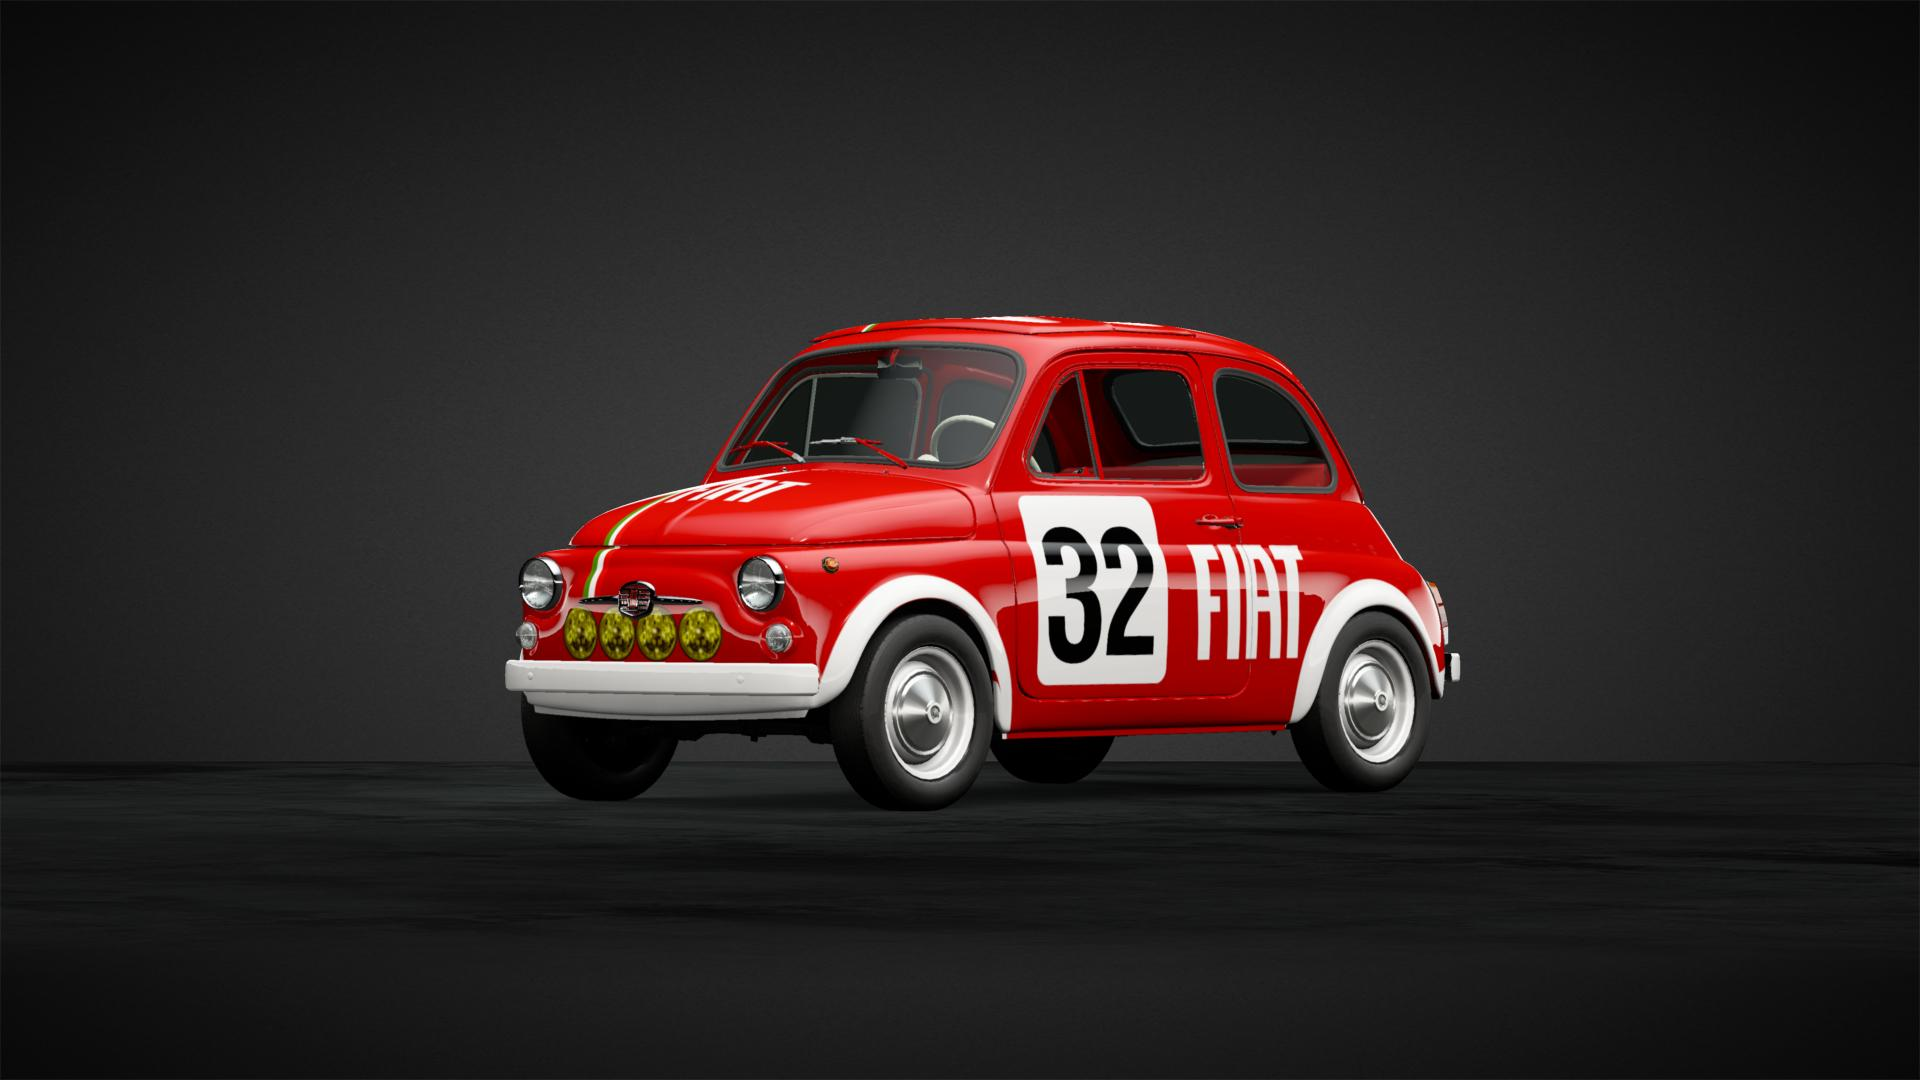 Fiat 500 F Rally Car 68 Car Livery By Julien Fra Community